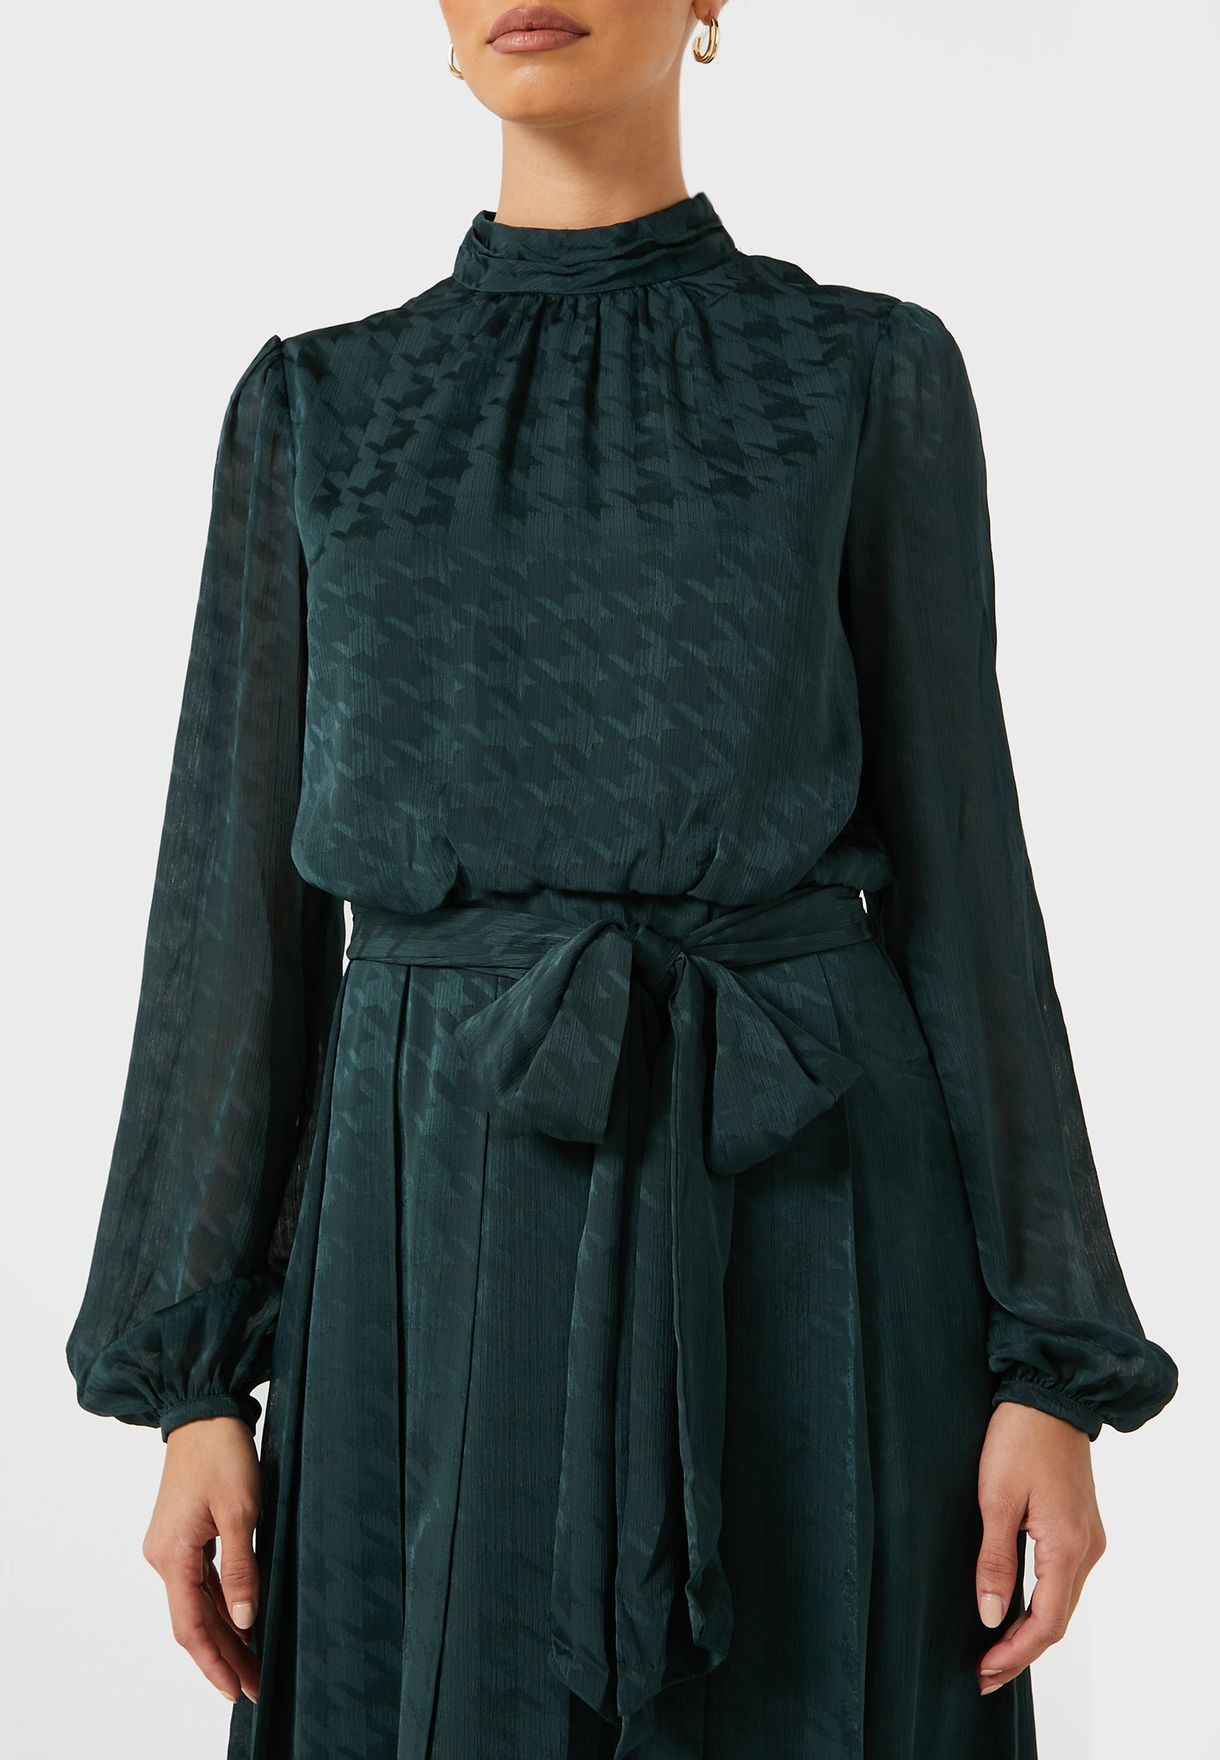 Wilmer Pleated Dress